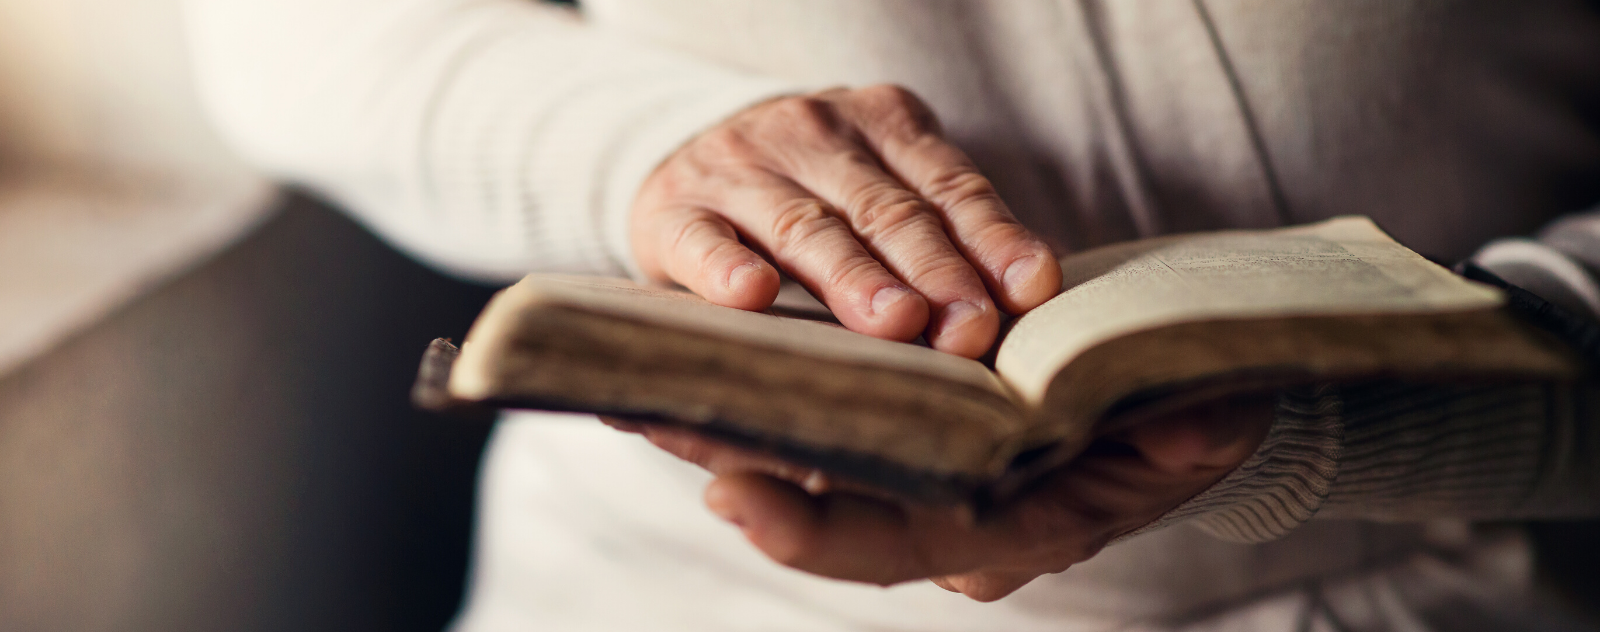 What are the most important bible verses to memorize?